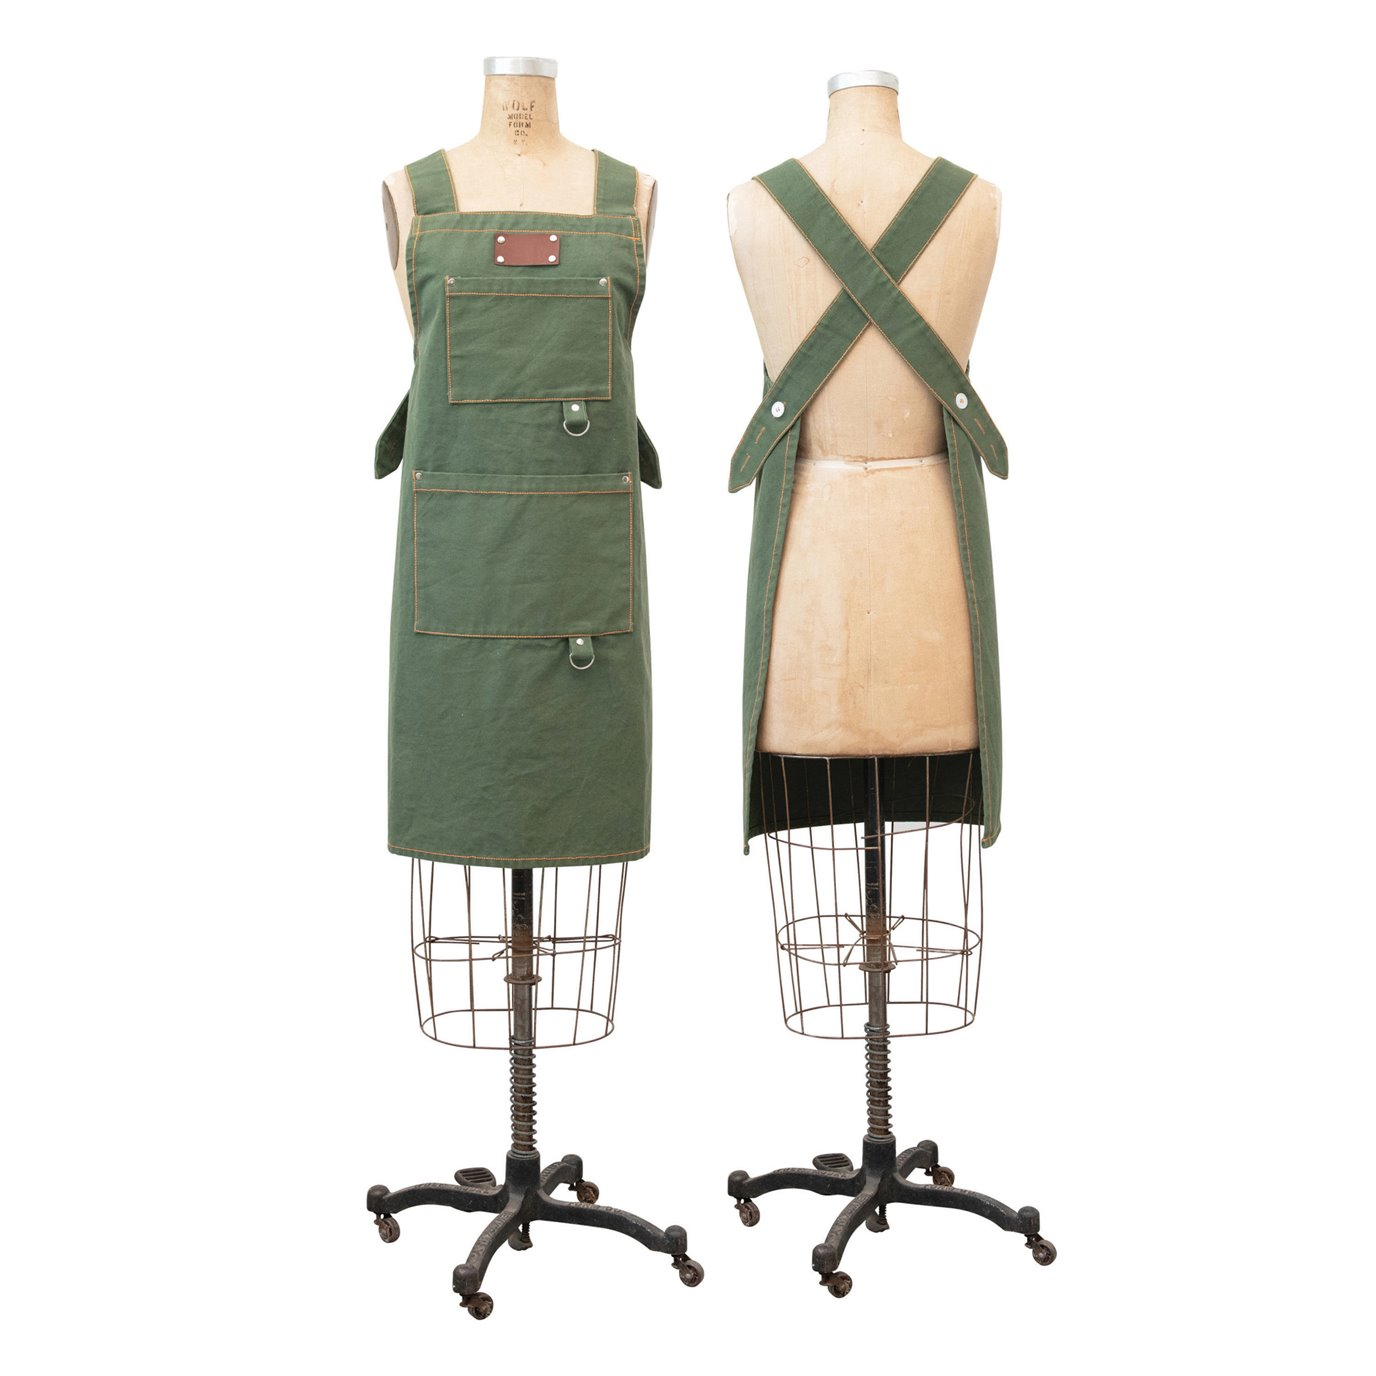 Cotton Canvas Cross Back Apron with Pockets & Rivets, Green